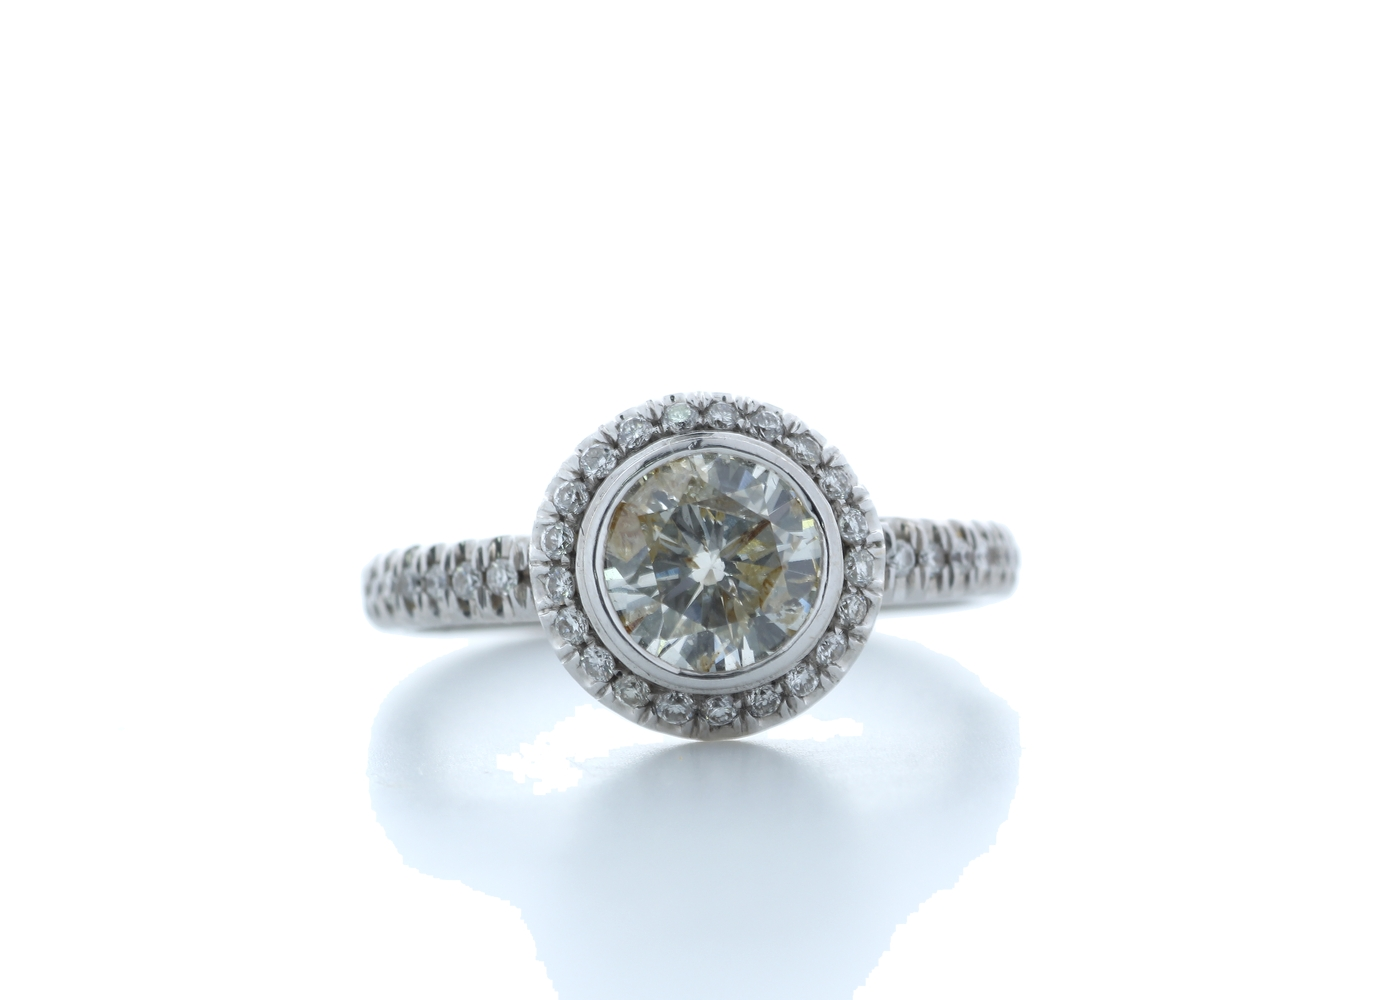 18ct White Gold Single Stone With Halo Setting Ring 1.39 Carats